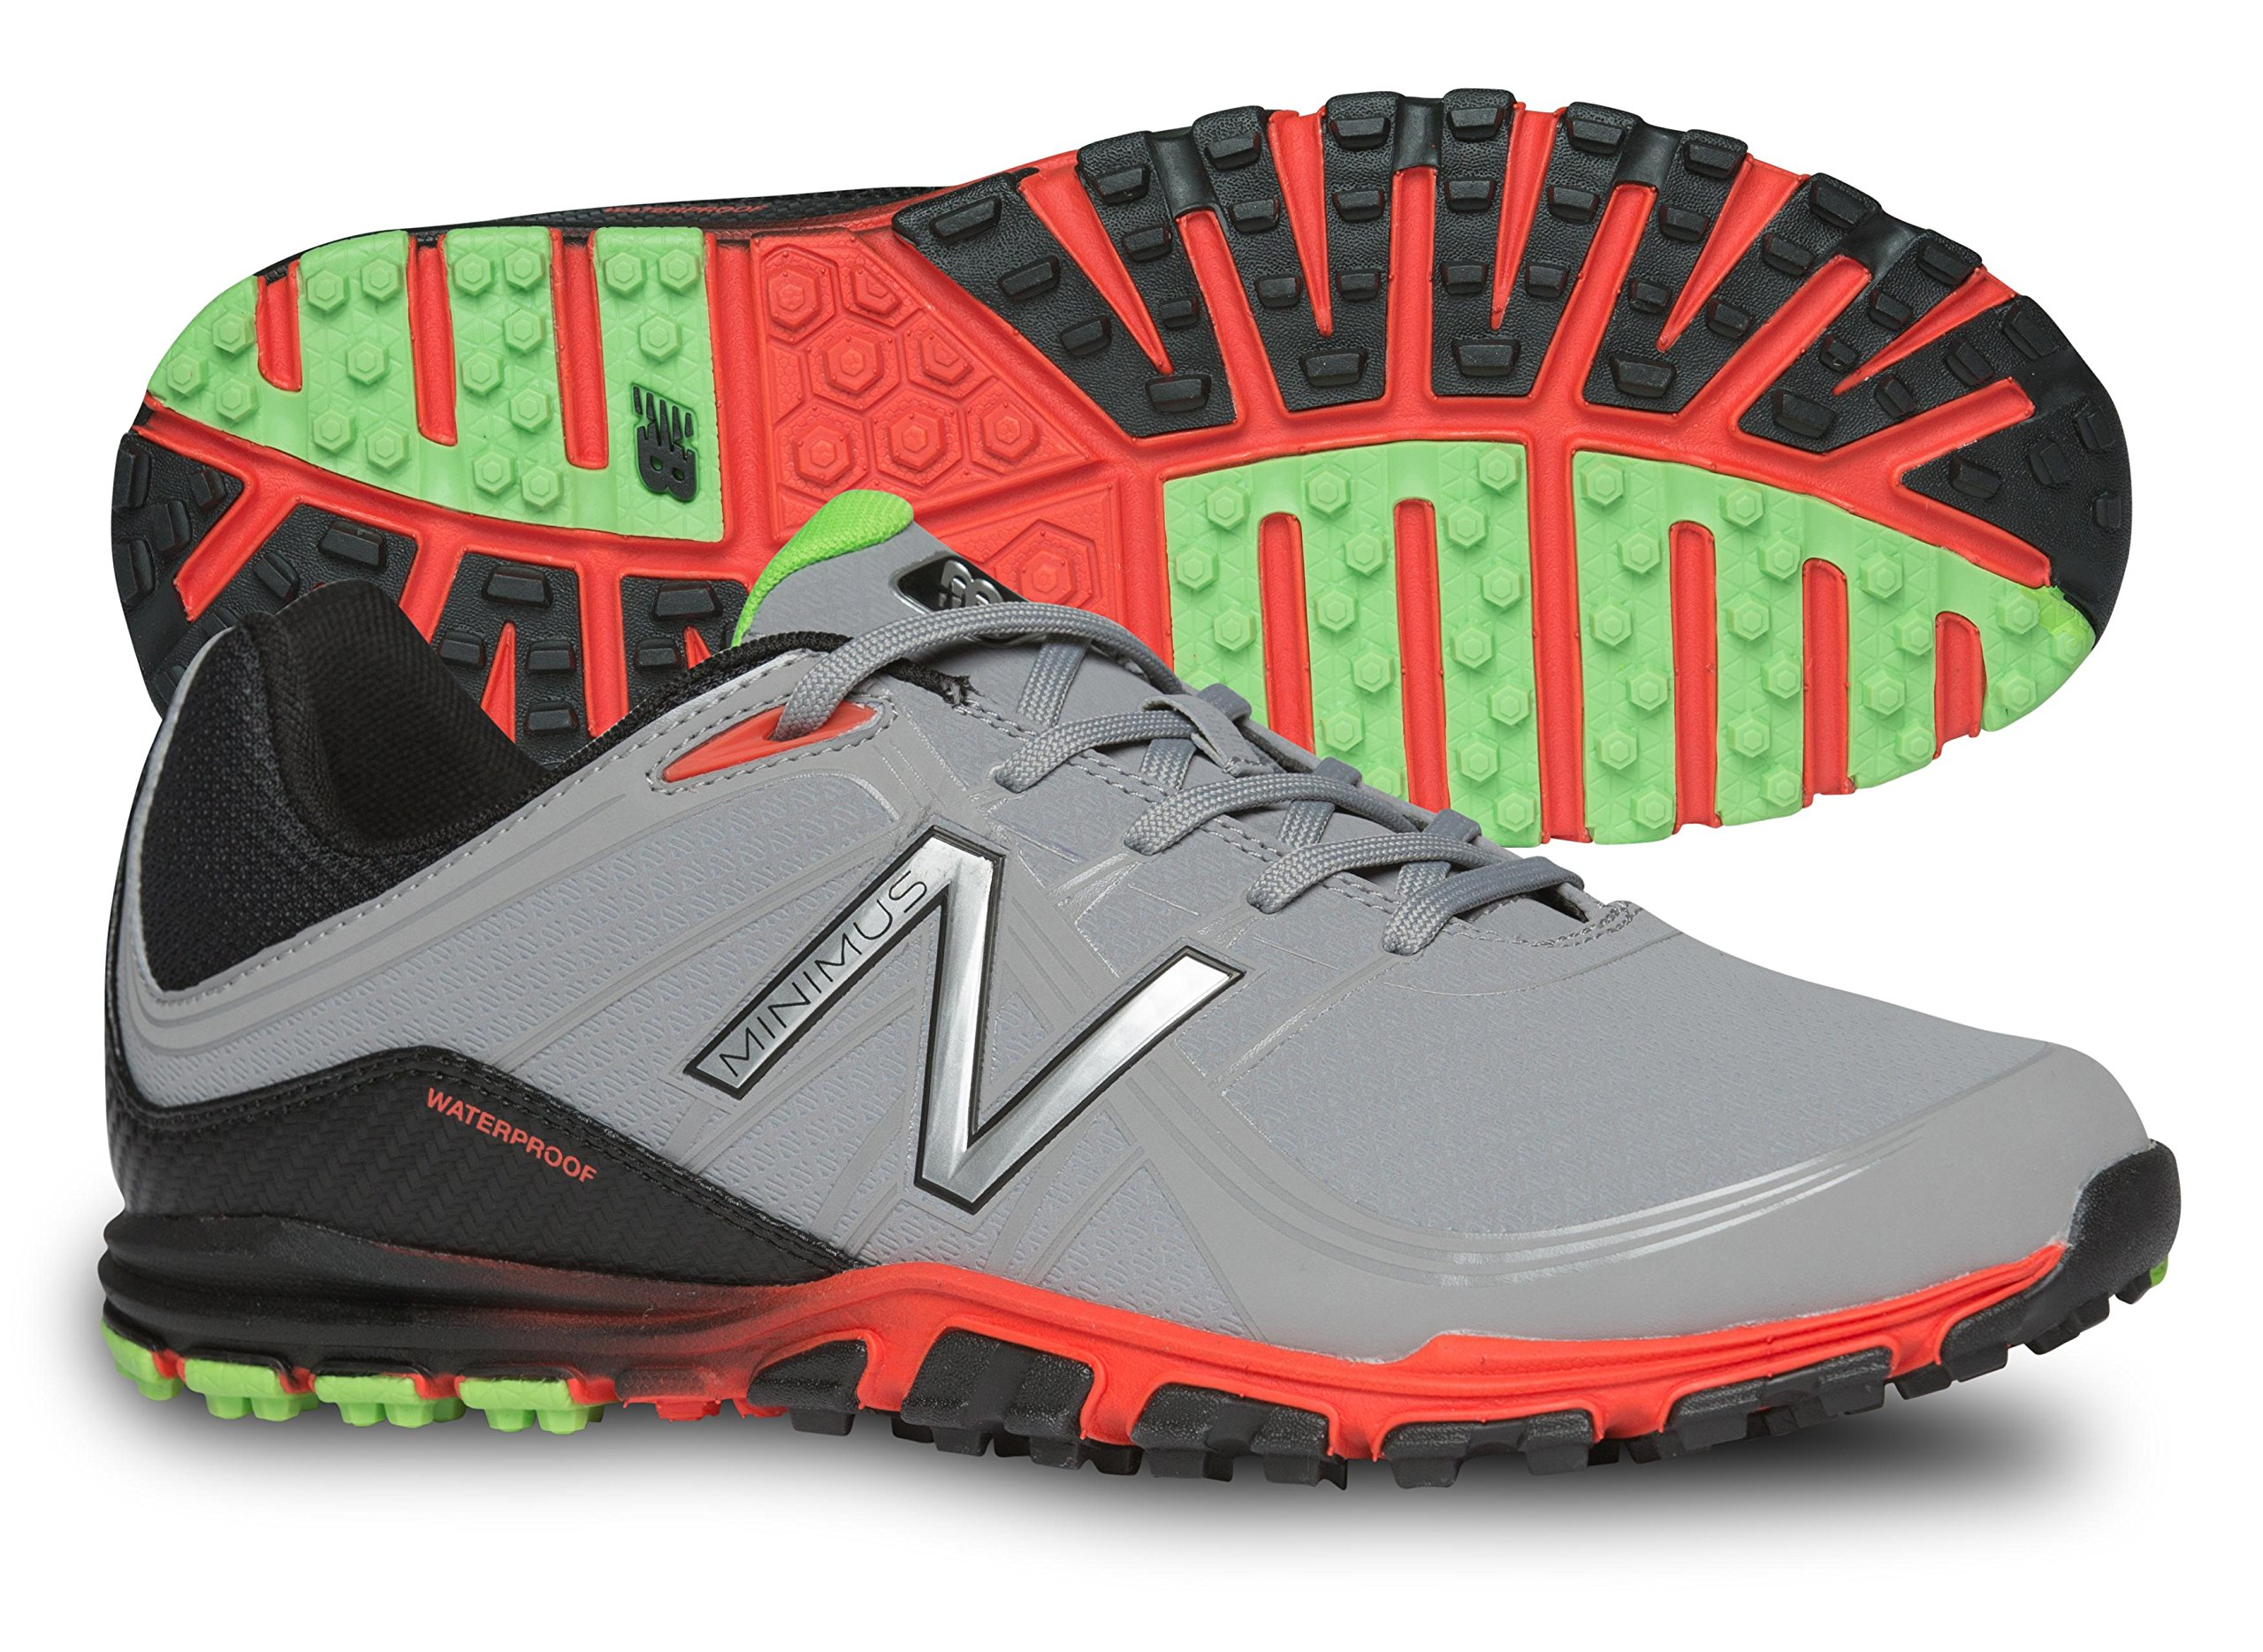 New Balance Men's Minimus Golf Shoe, Grey/Orange, 11 D US by New Balance